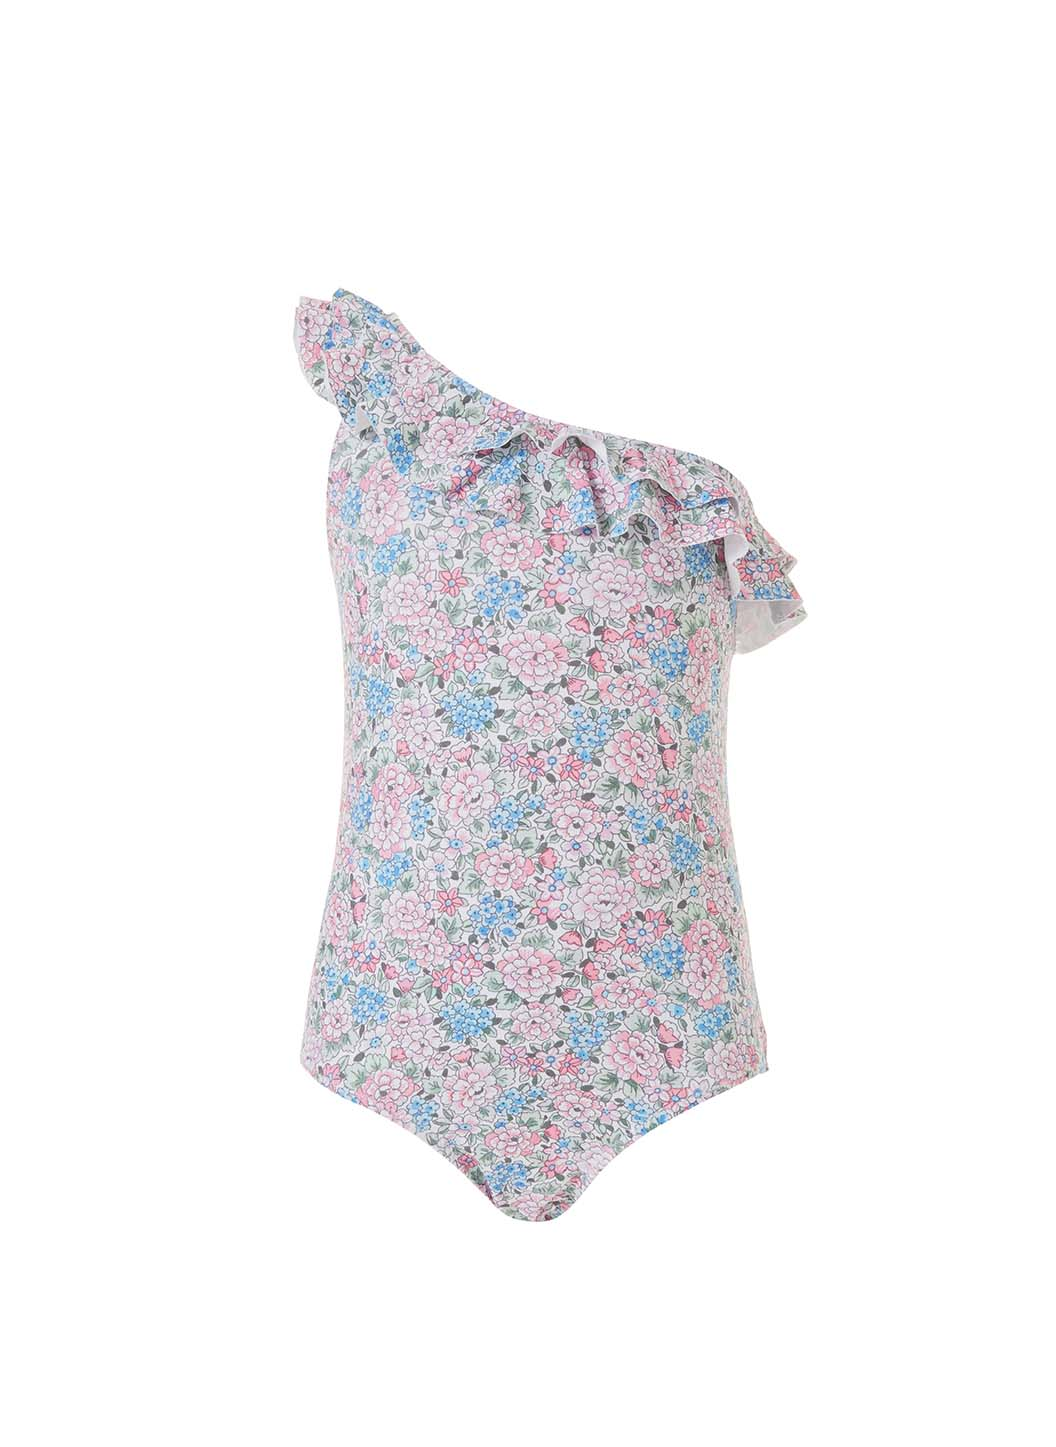 Baby Kiera Floral Blue One Shoulder Frill Swimsuit